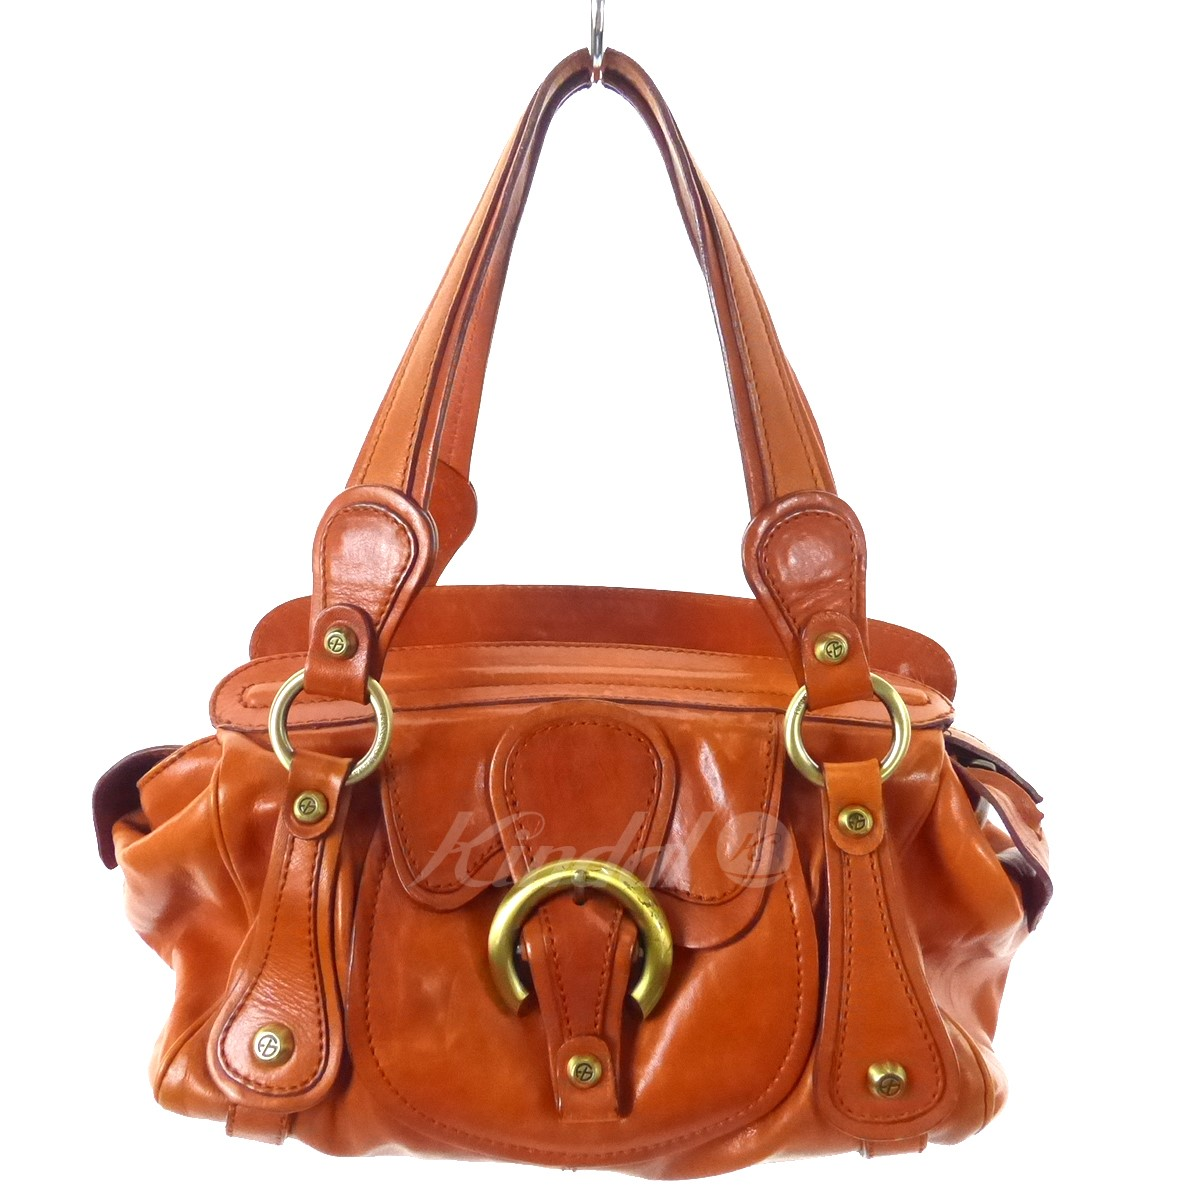 a343393cbc9e FRANCESCO BIASIA leather handbag orange brown size  - (Francesco biAsia)